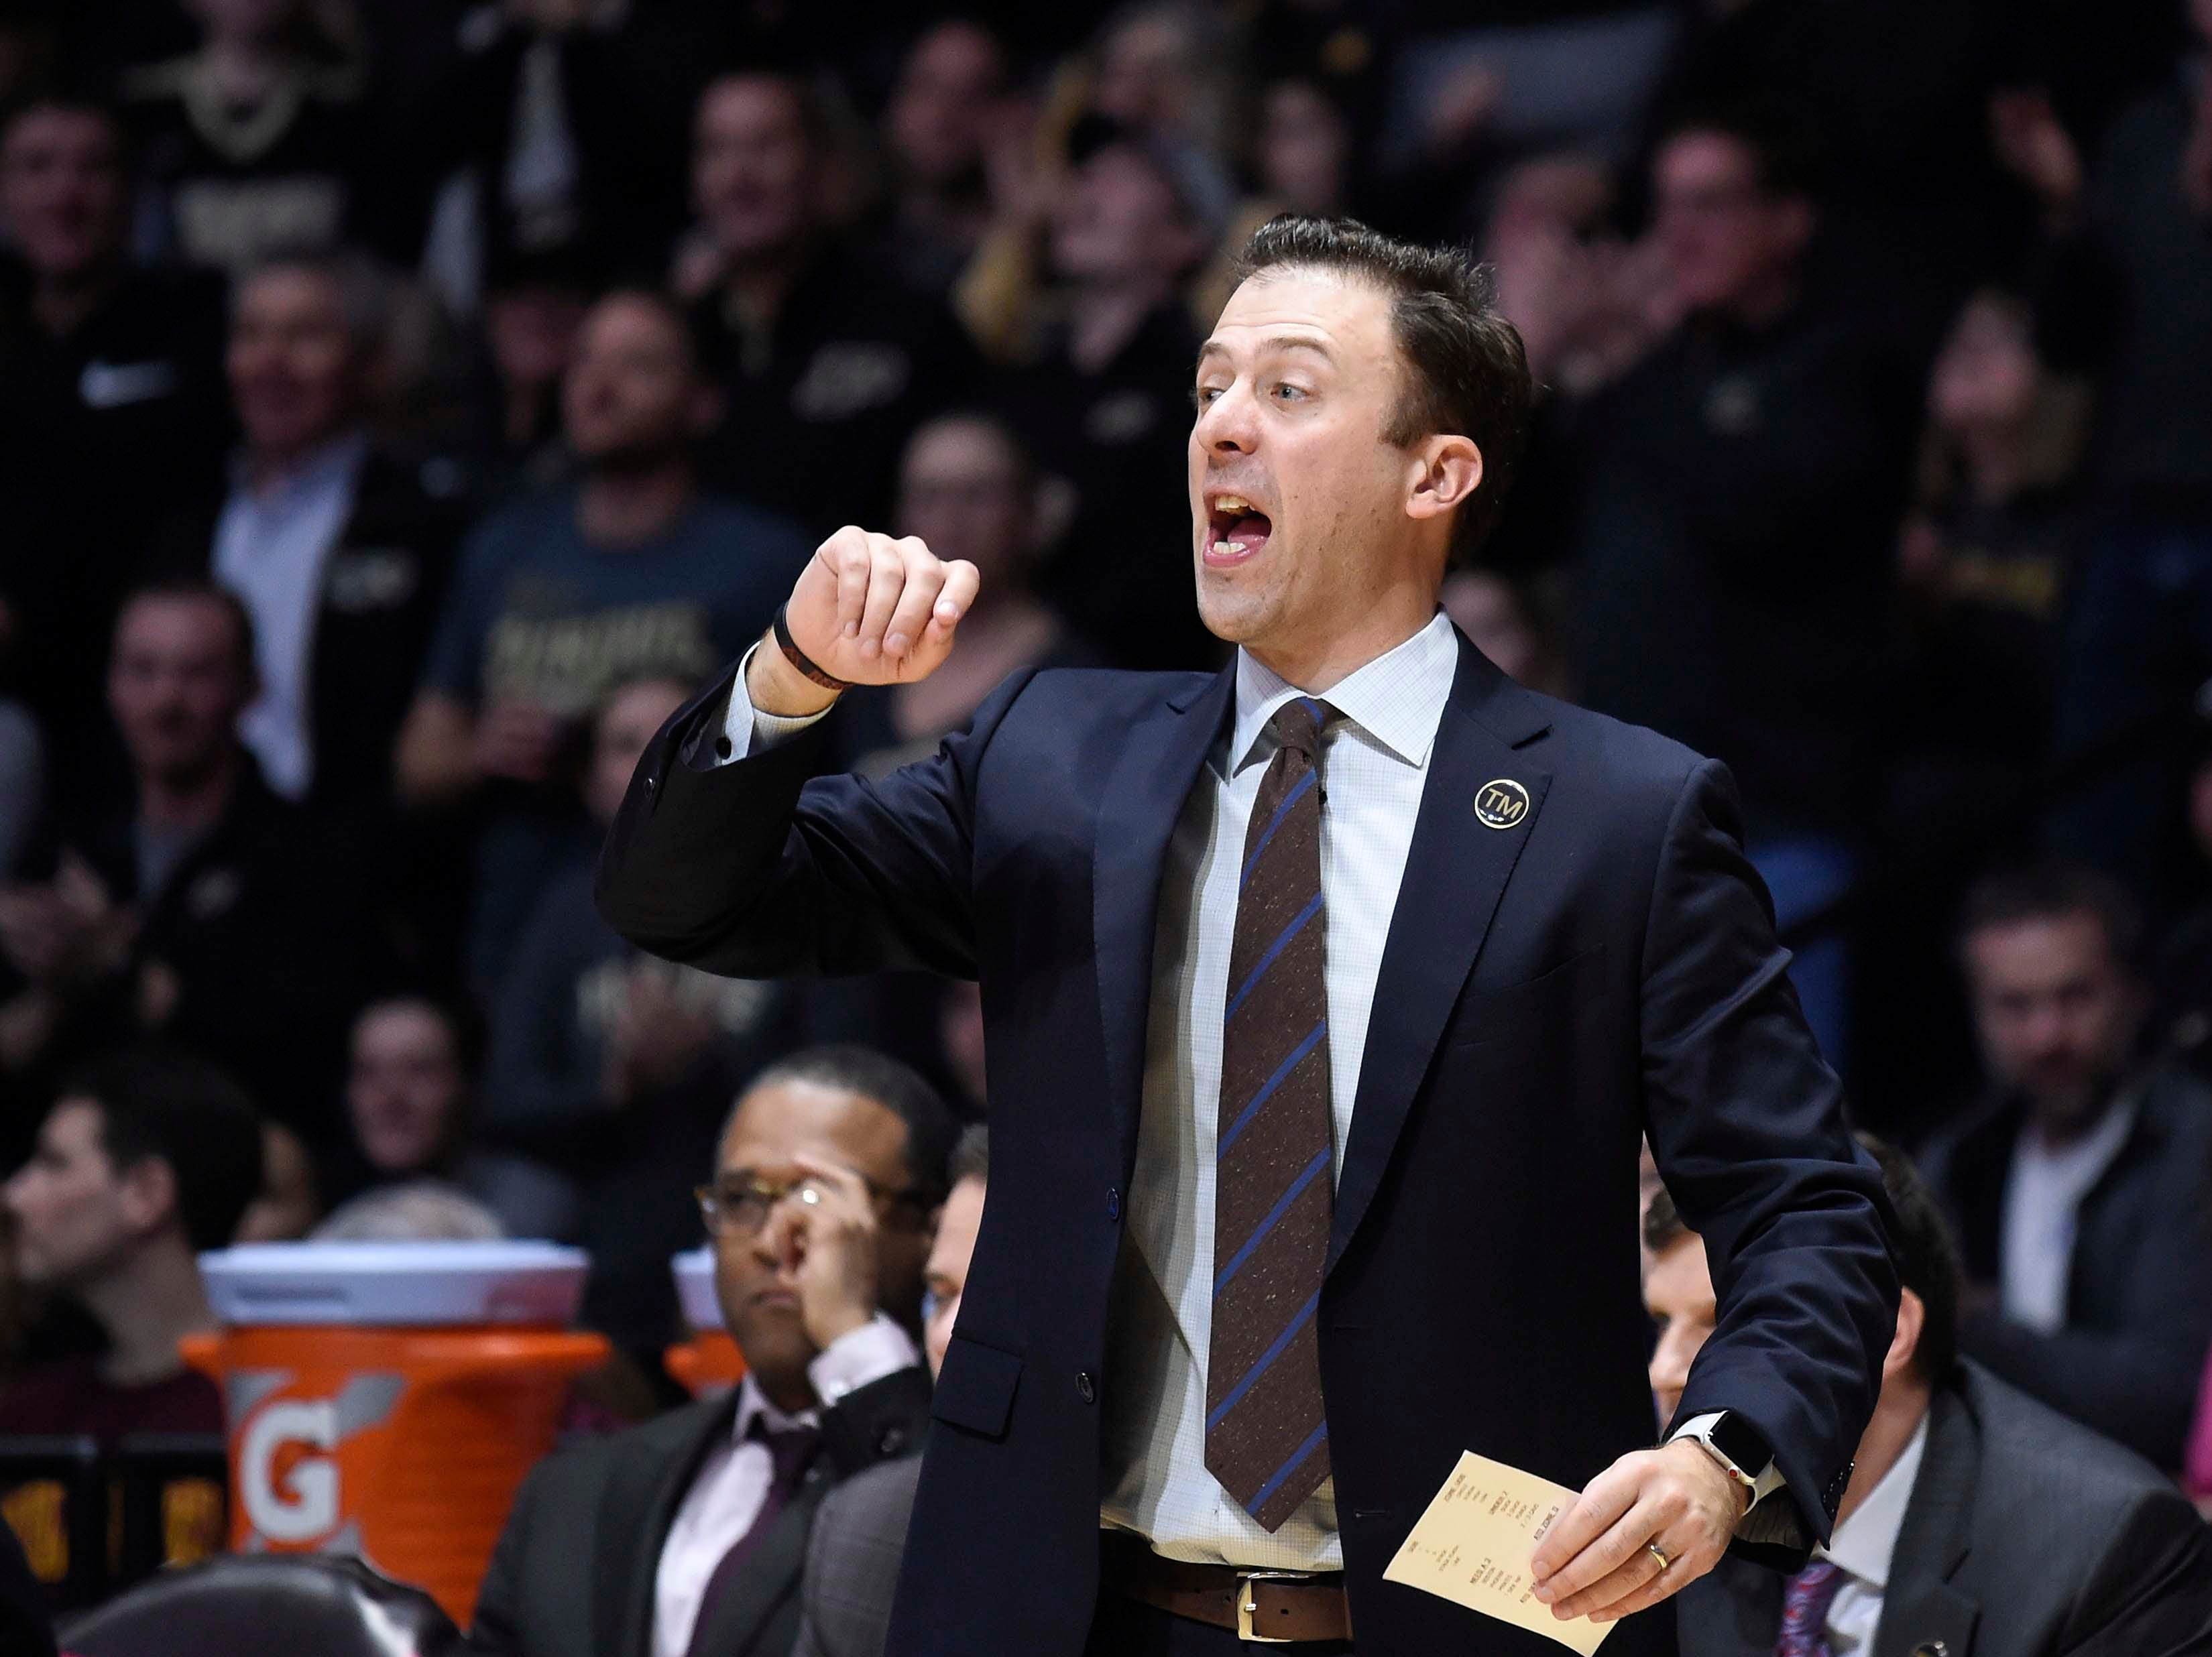 Feb 3, 2019; West Lafayette, IN, USA; Minnesota Golden Gophers head coach Richard Pitino in the game against Purdue Boilermakersin the  2nd half at Mackey Arena. Mandatory Credit: Sandra Dukes-USA TODAY Sports